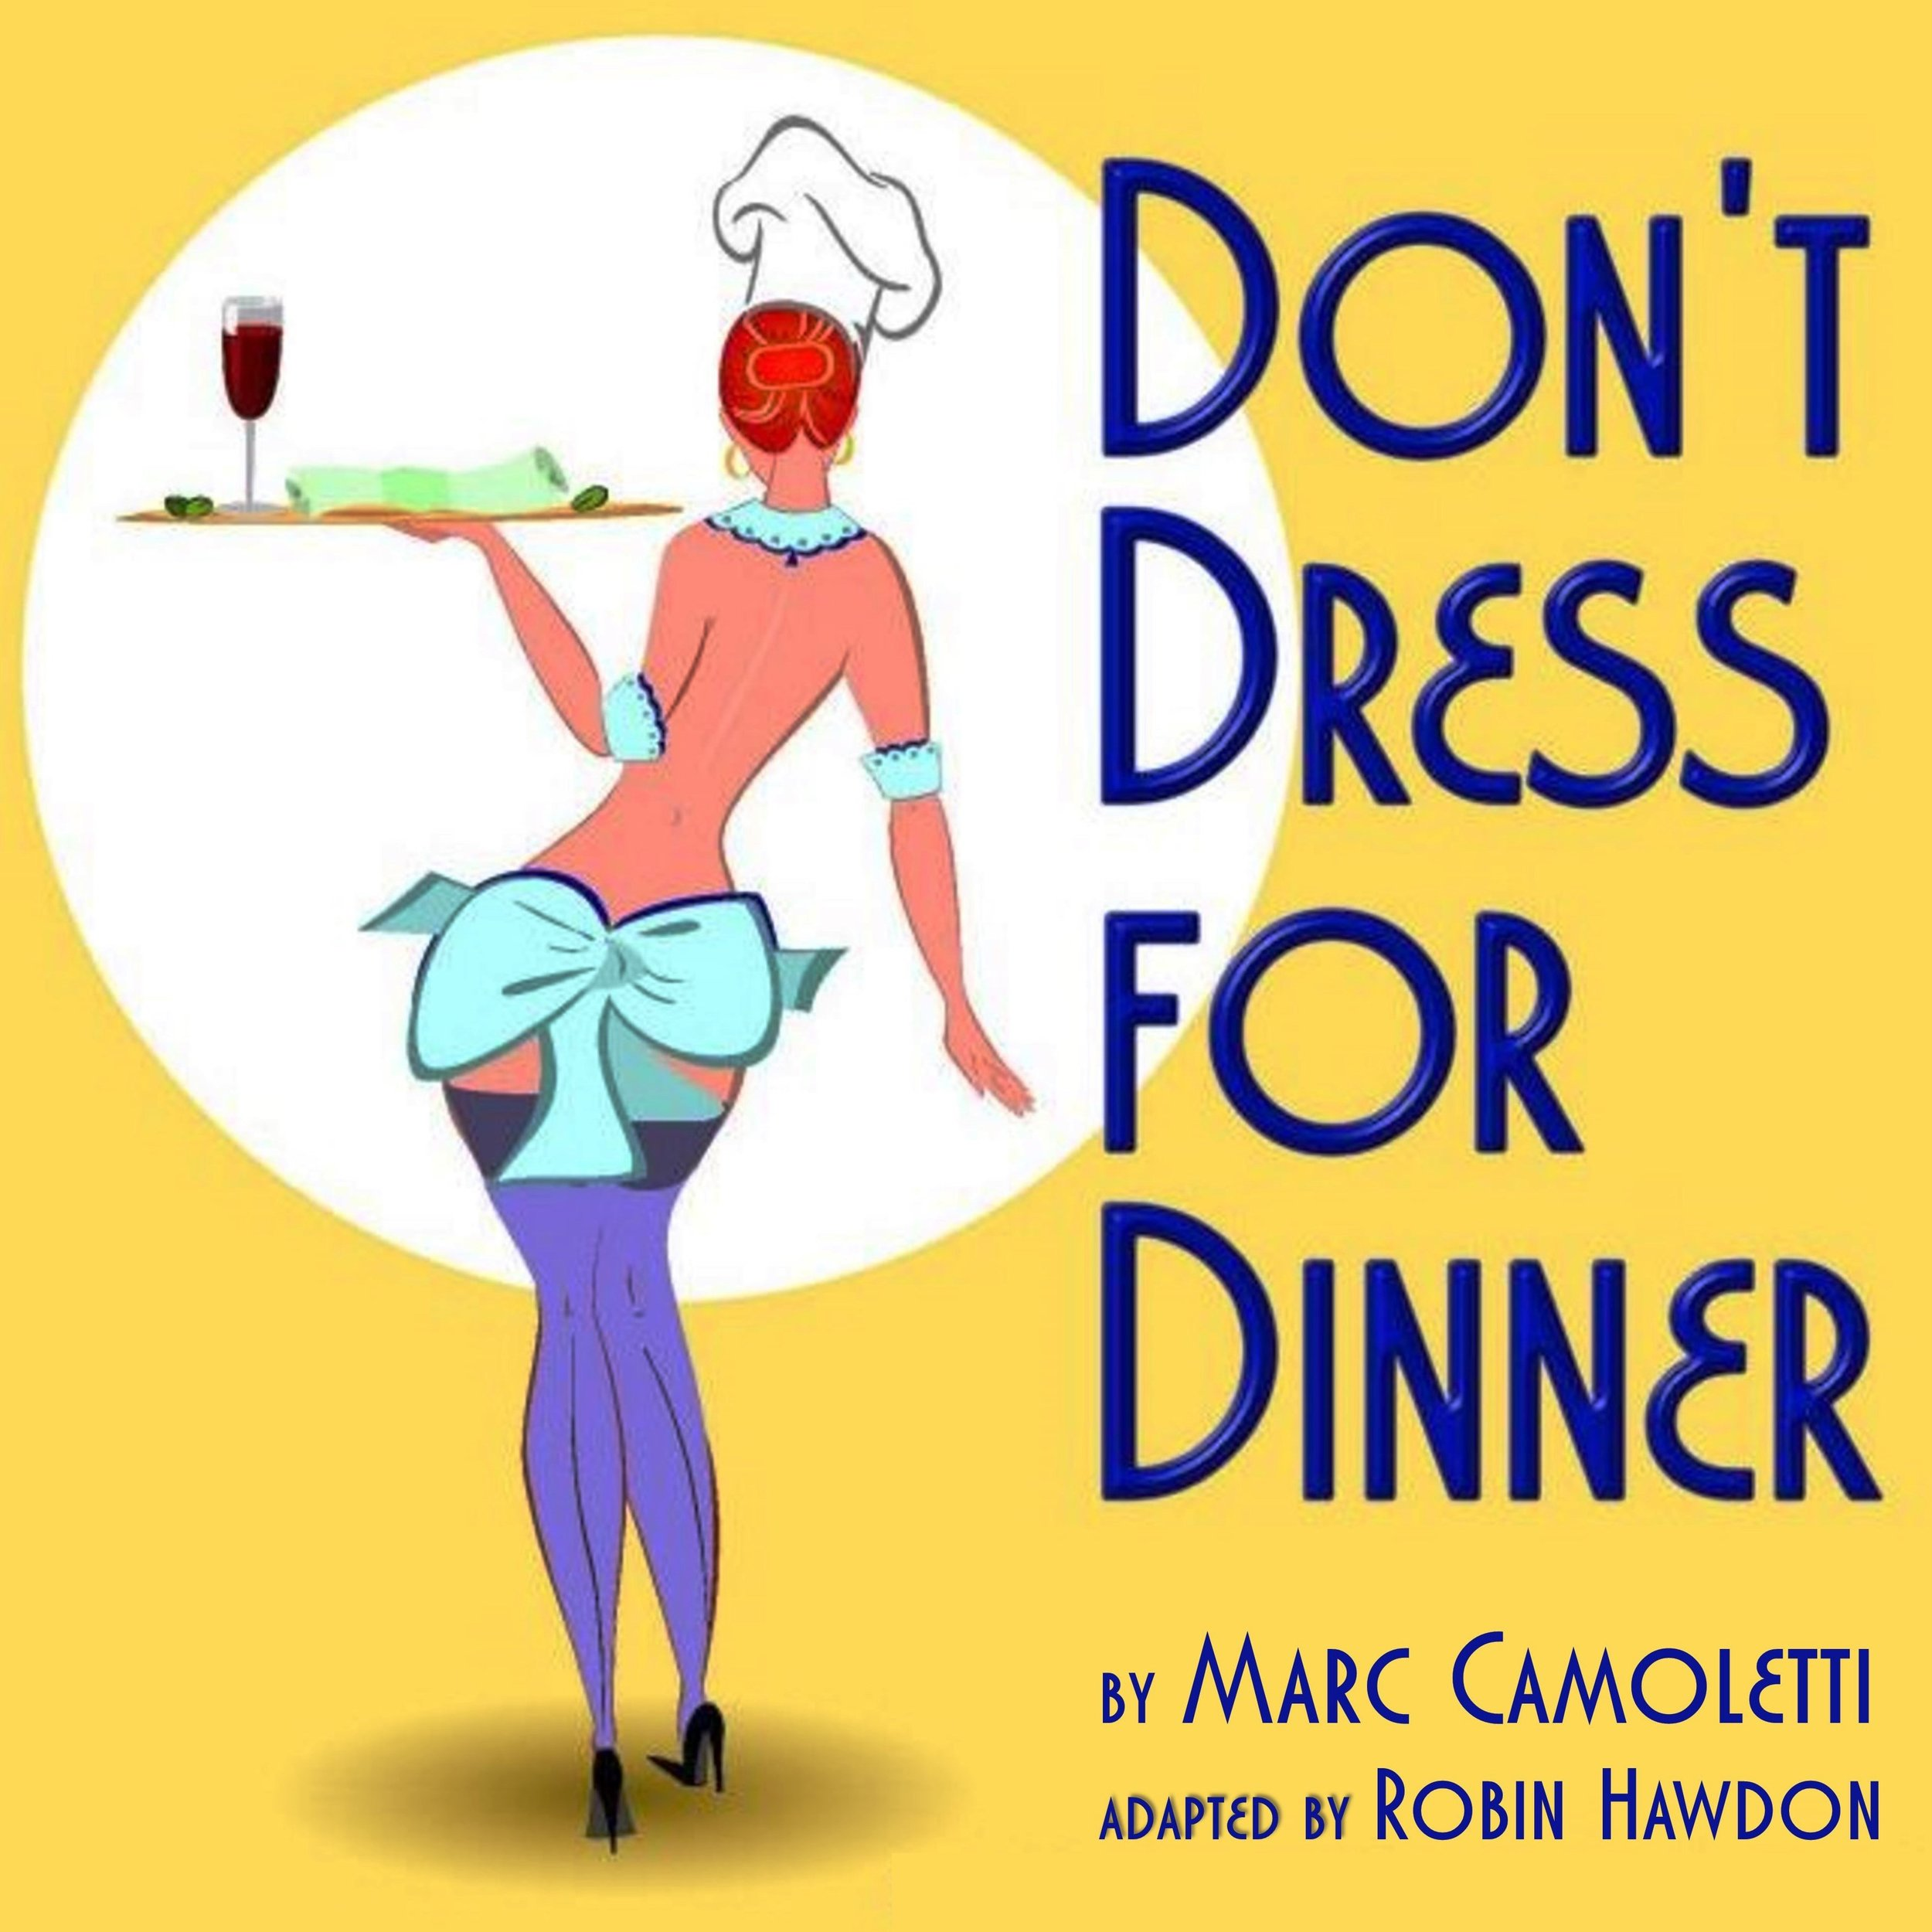 dont dress for dinner web image.jpg